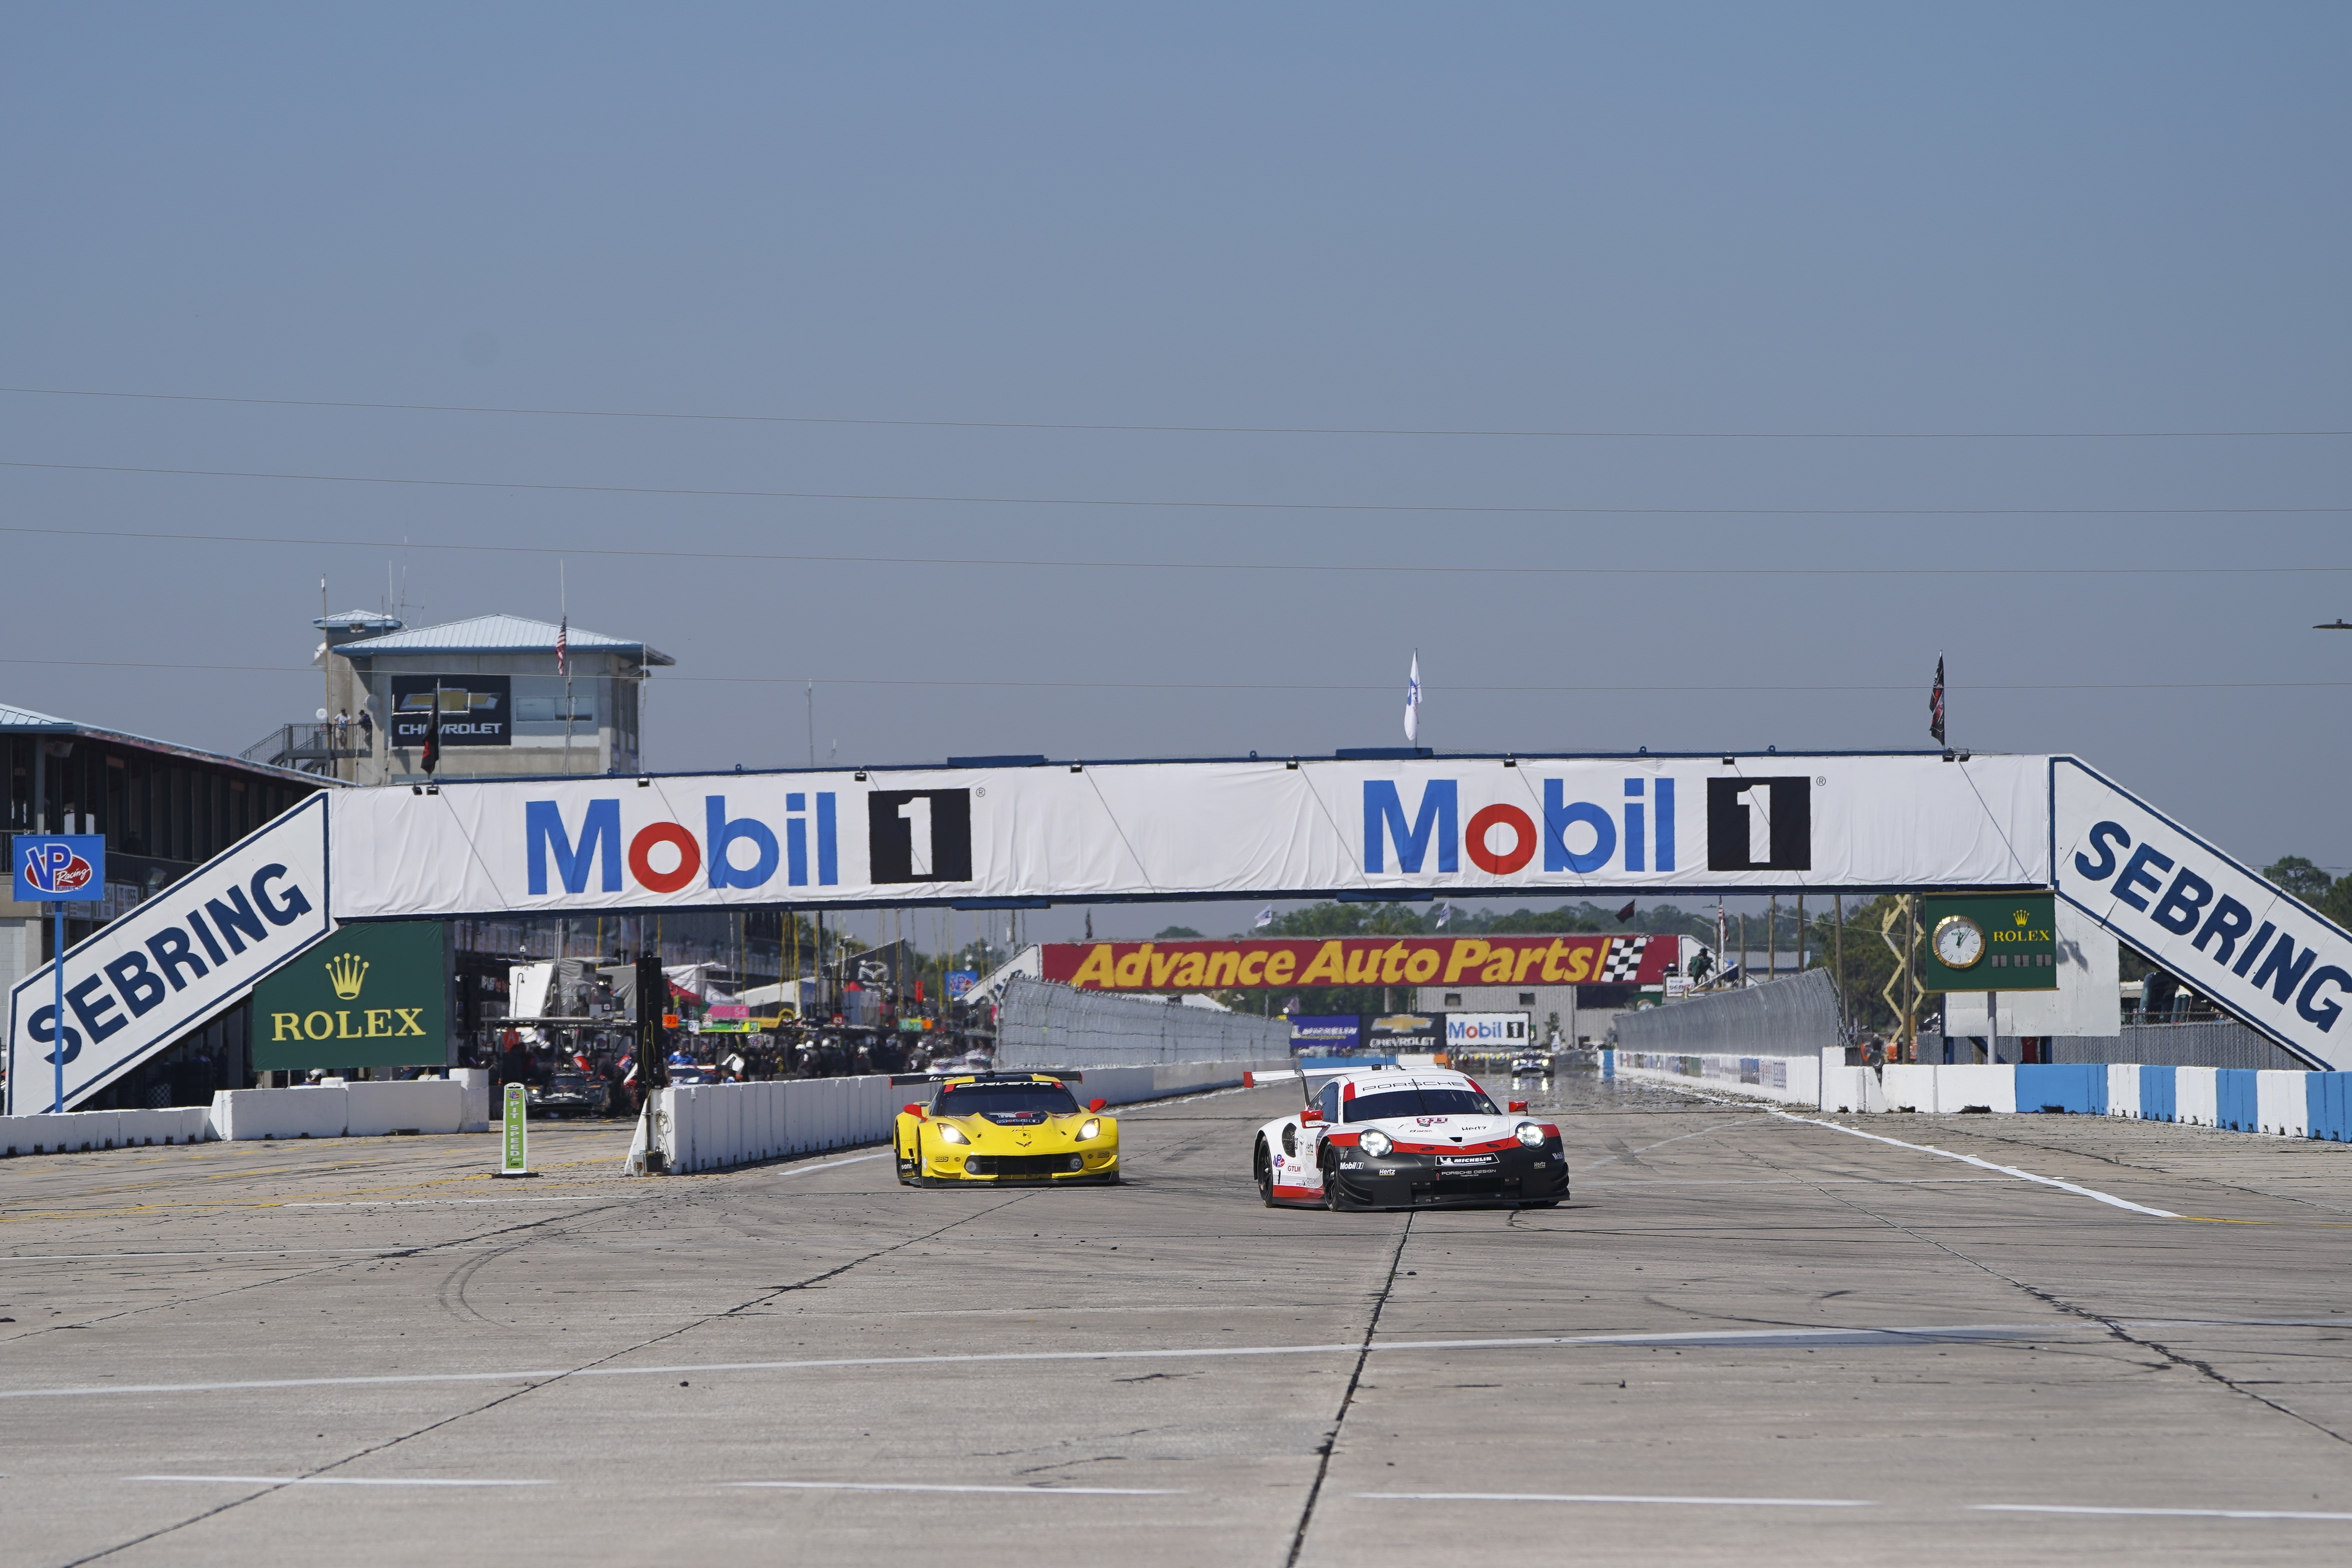 mobil 1 and sebring extend high speed race partnership business wire